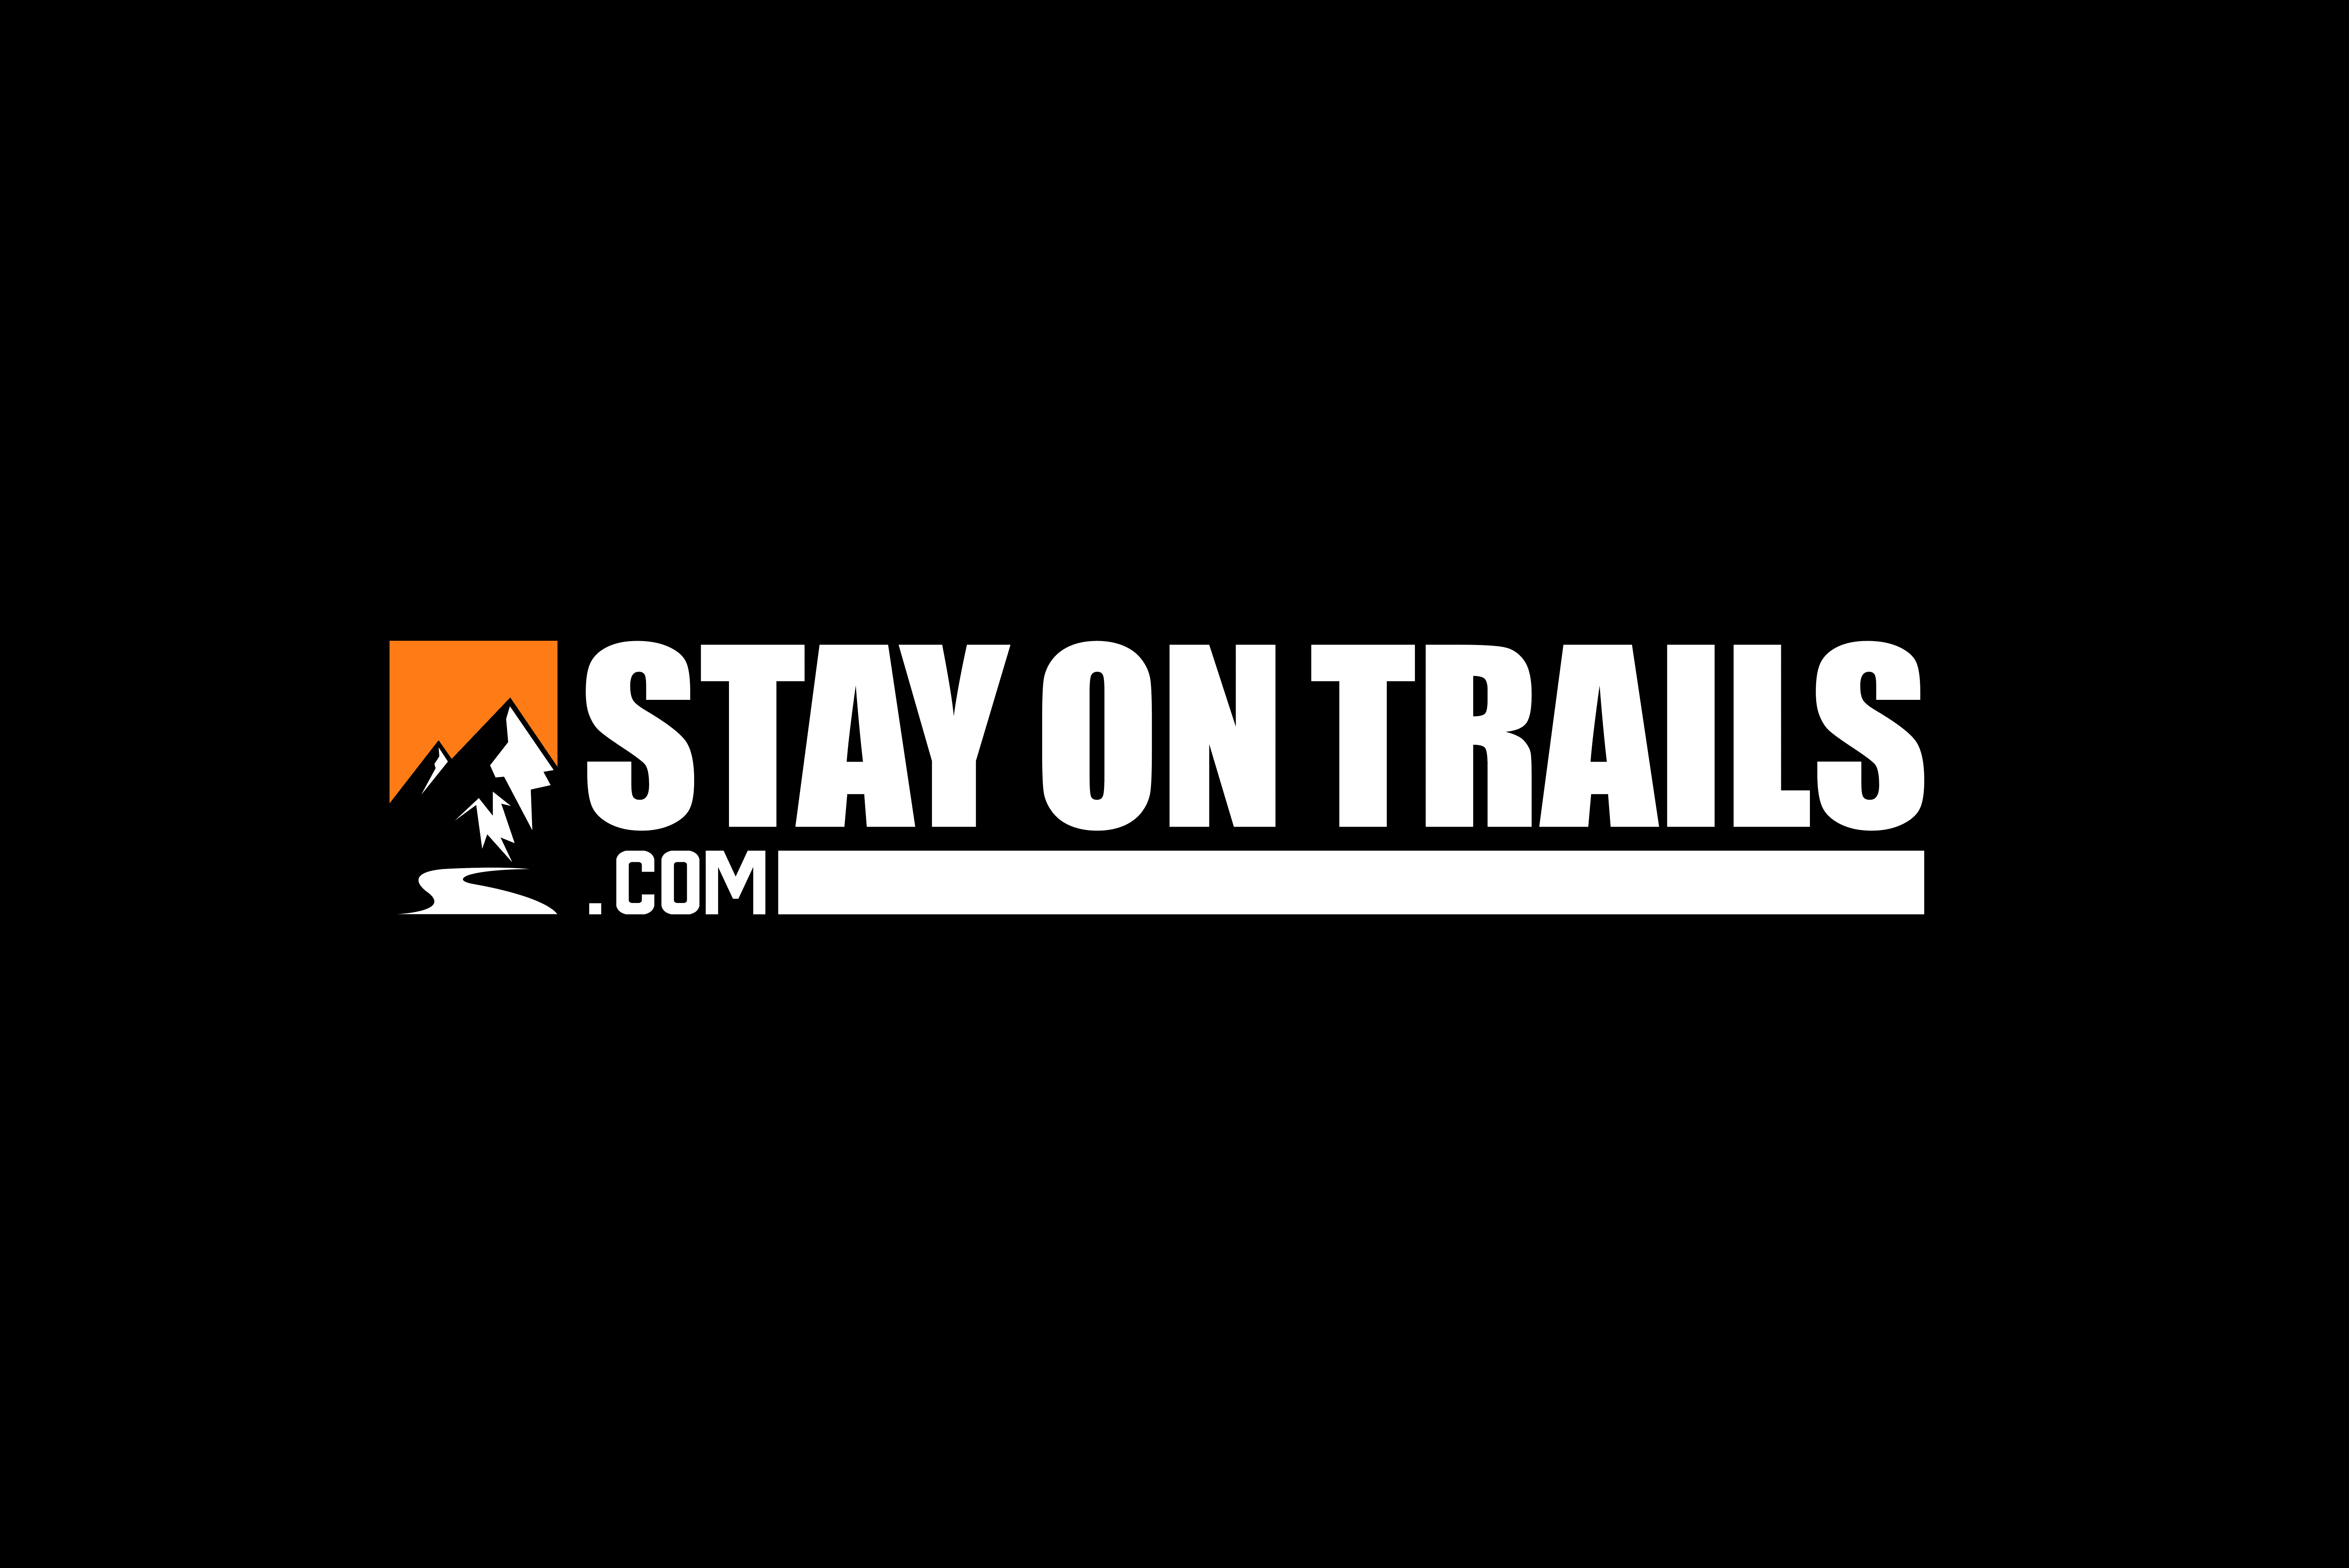 STAY ON TRAILS